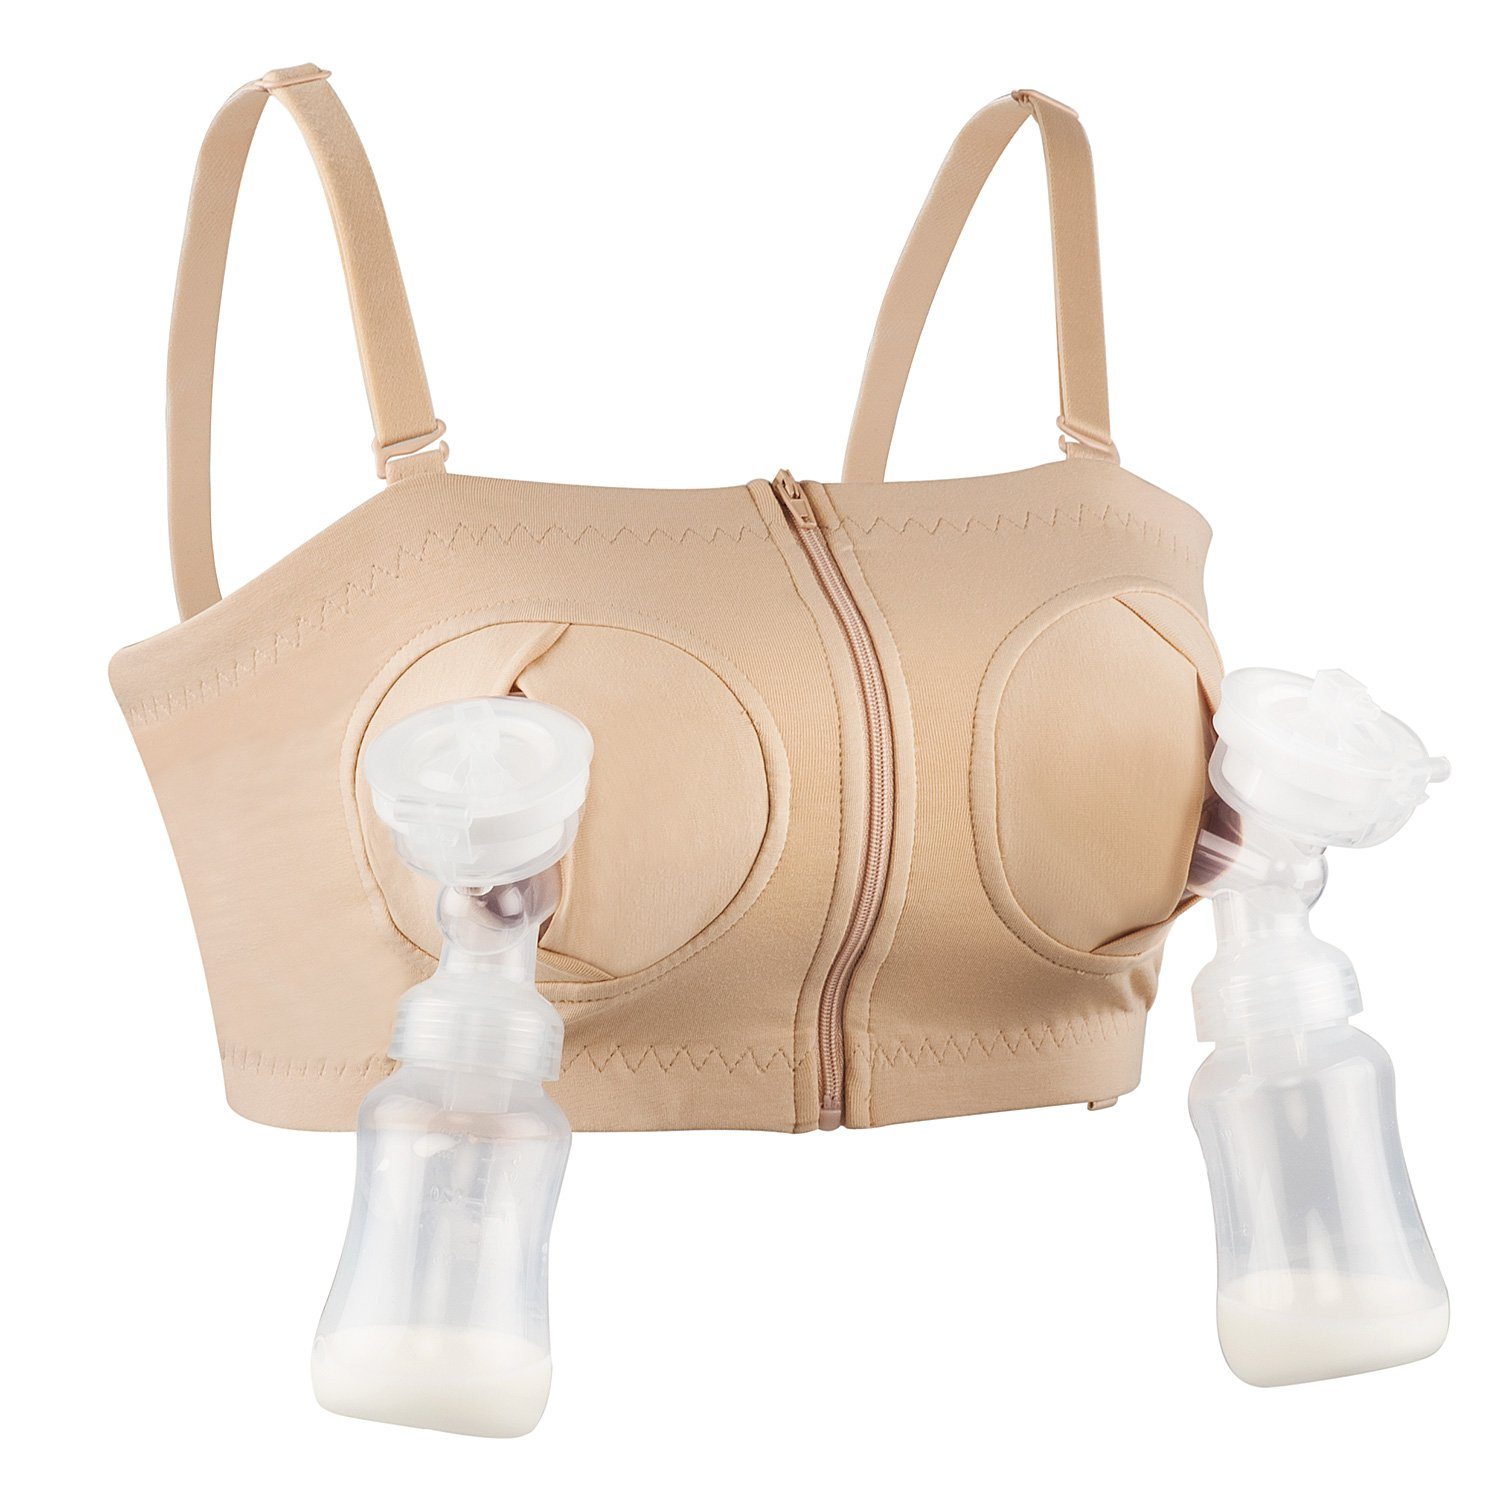 f9ac6aef96 Amazon.com   Hands-Free Pumping Bra Adjustable Breast-Pumps Holding Bra by  JIAN - Suitable for Breastfeeding-Pumps by Medela